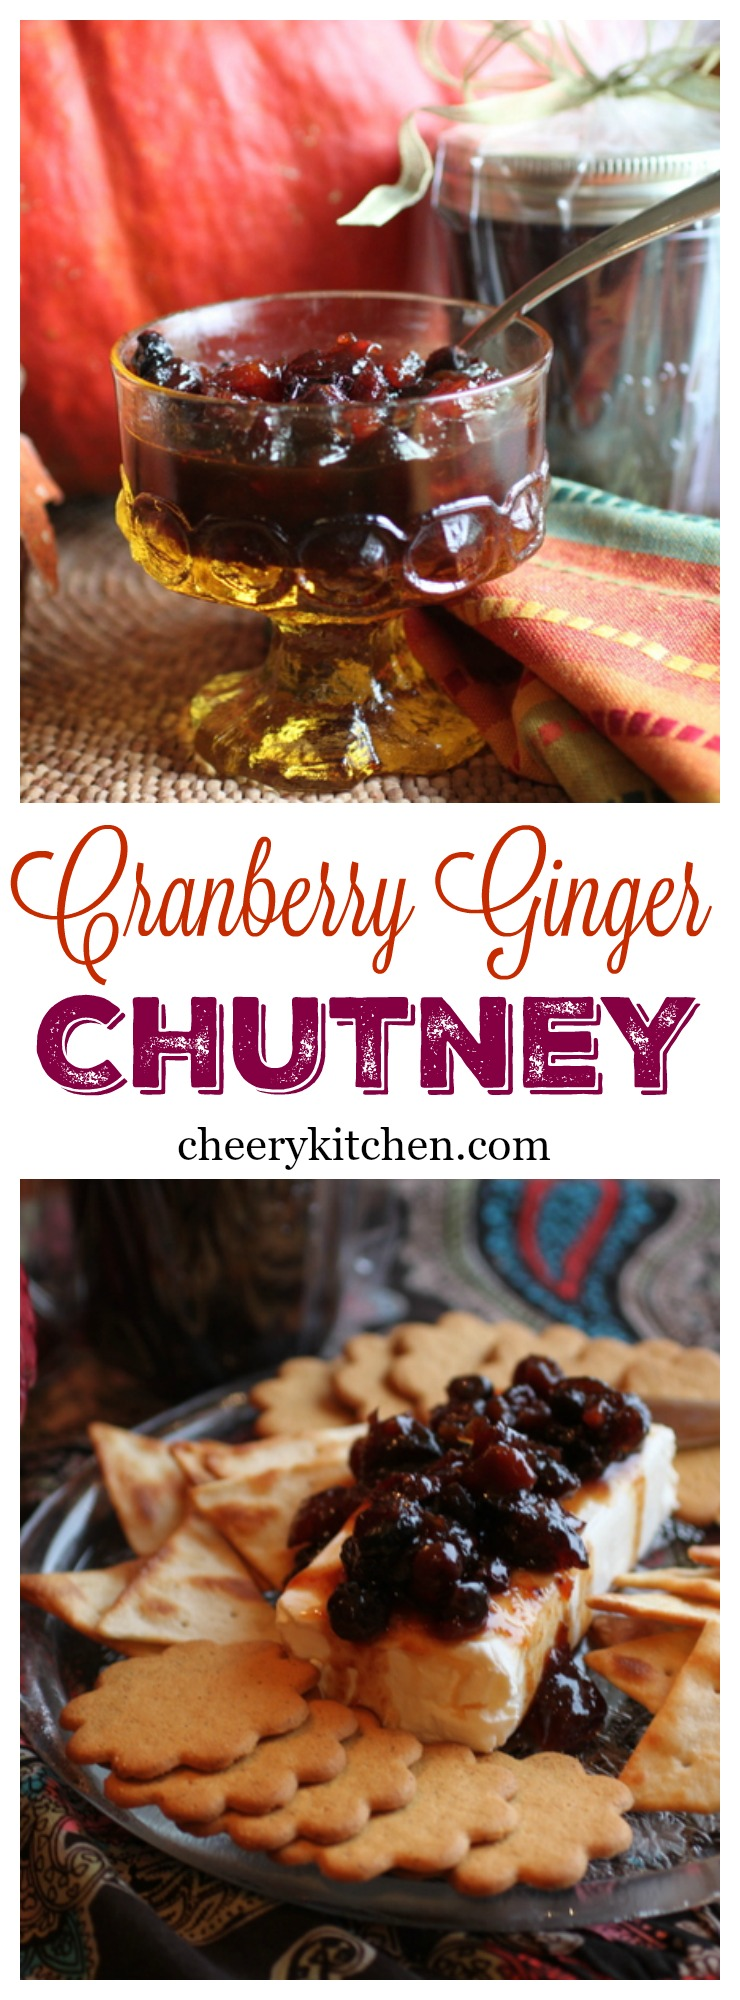 Cranberry Ginger Chutney